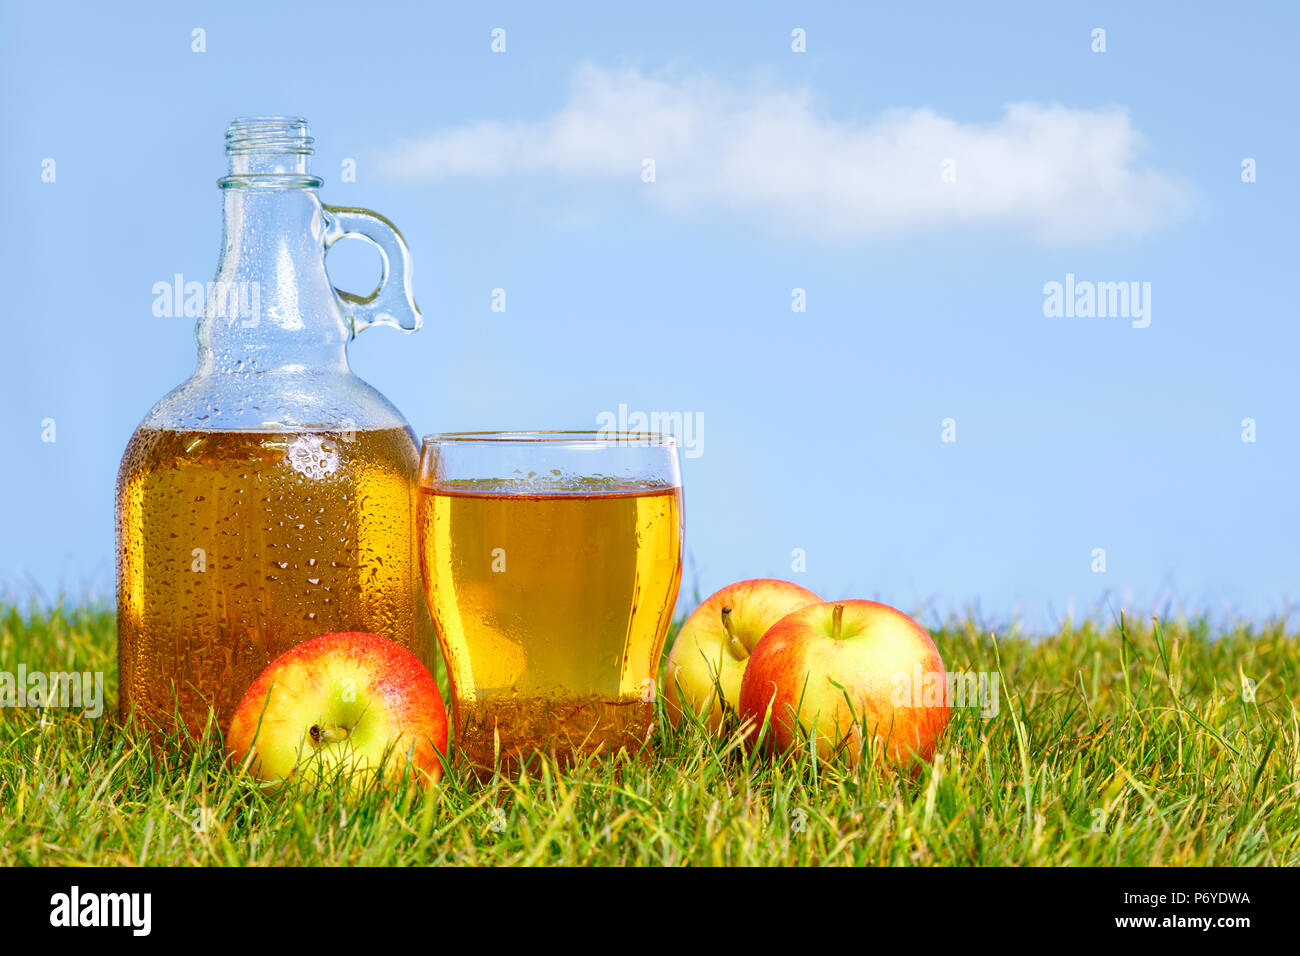 An ice cold flagon of fresh apple cider with pint glass amongst green grass in an orchard on a hot summers day. Stock Photo